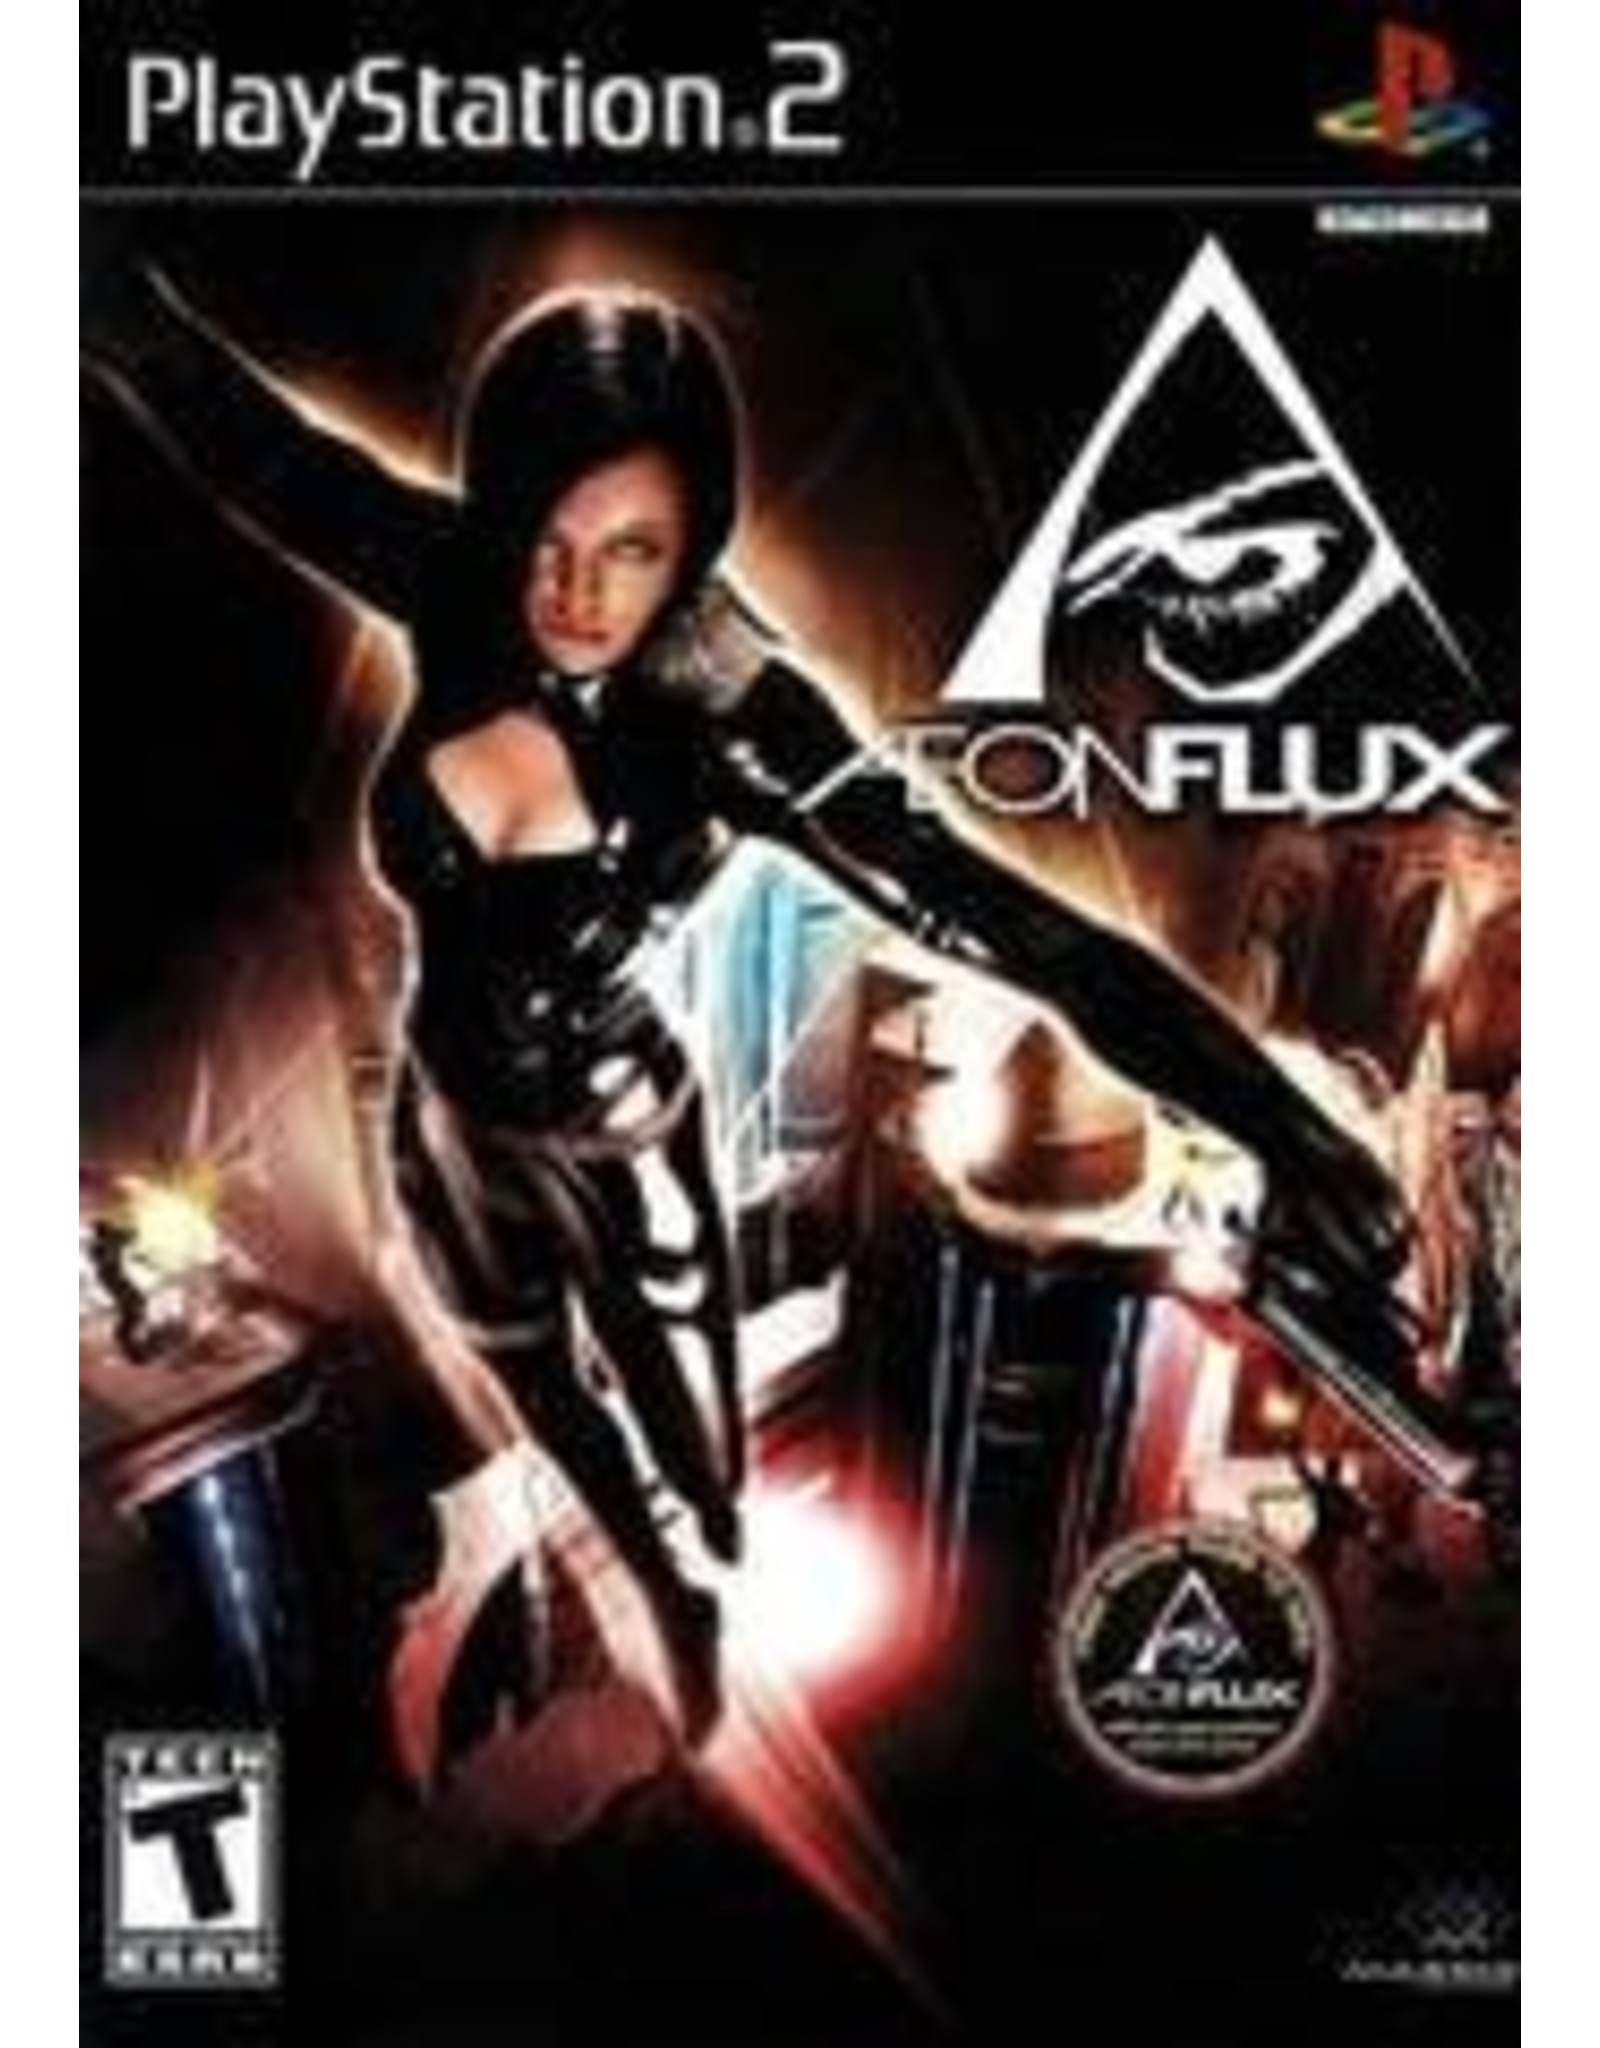 Playstation 2 Aeon Flux (CiB)